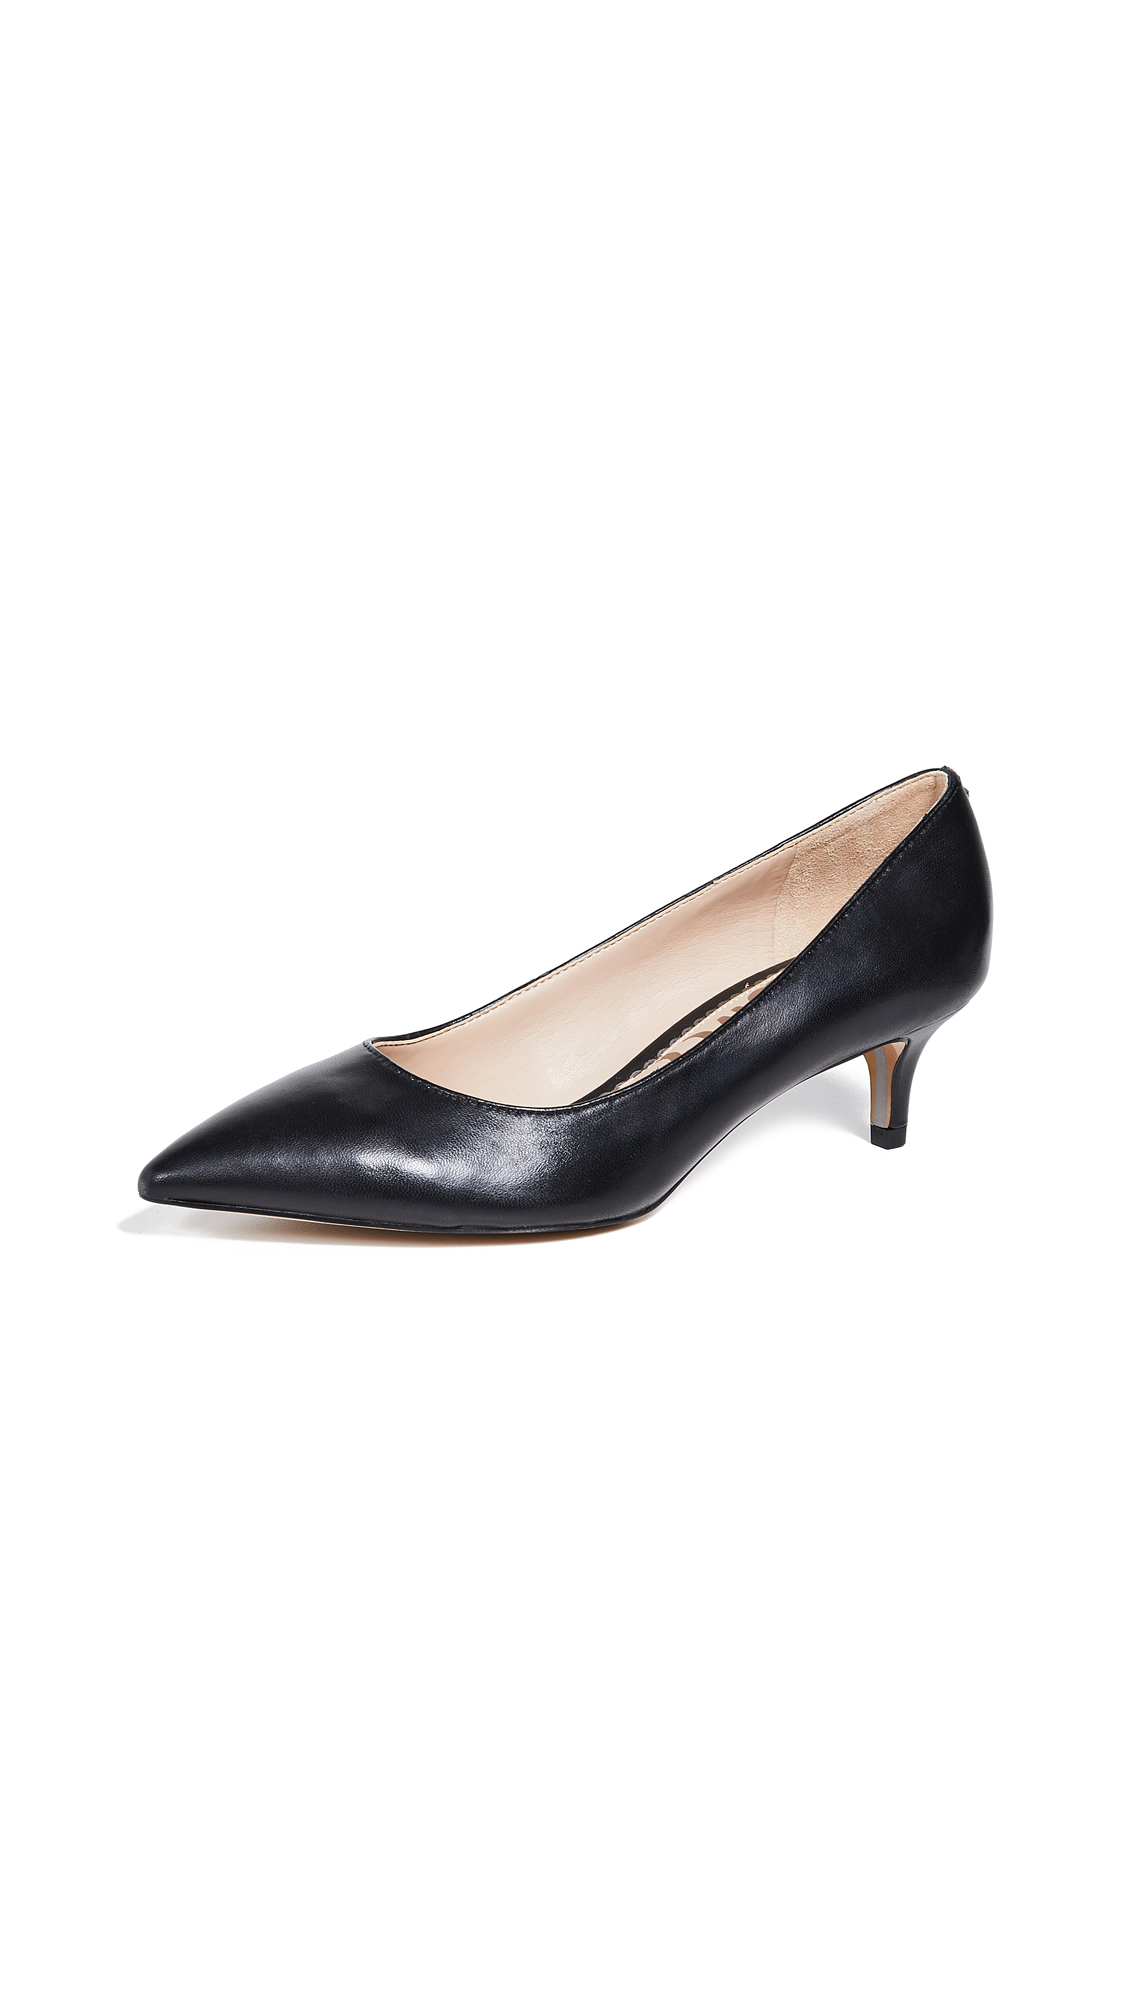 Sam Edelman Dori Pumps - Black